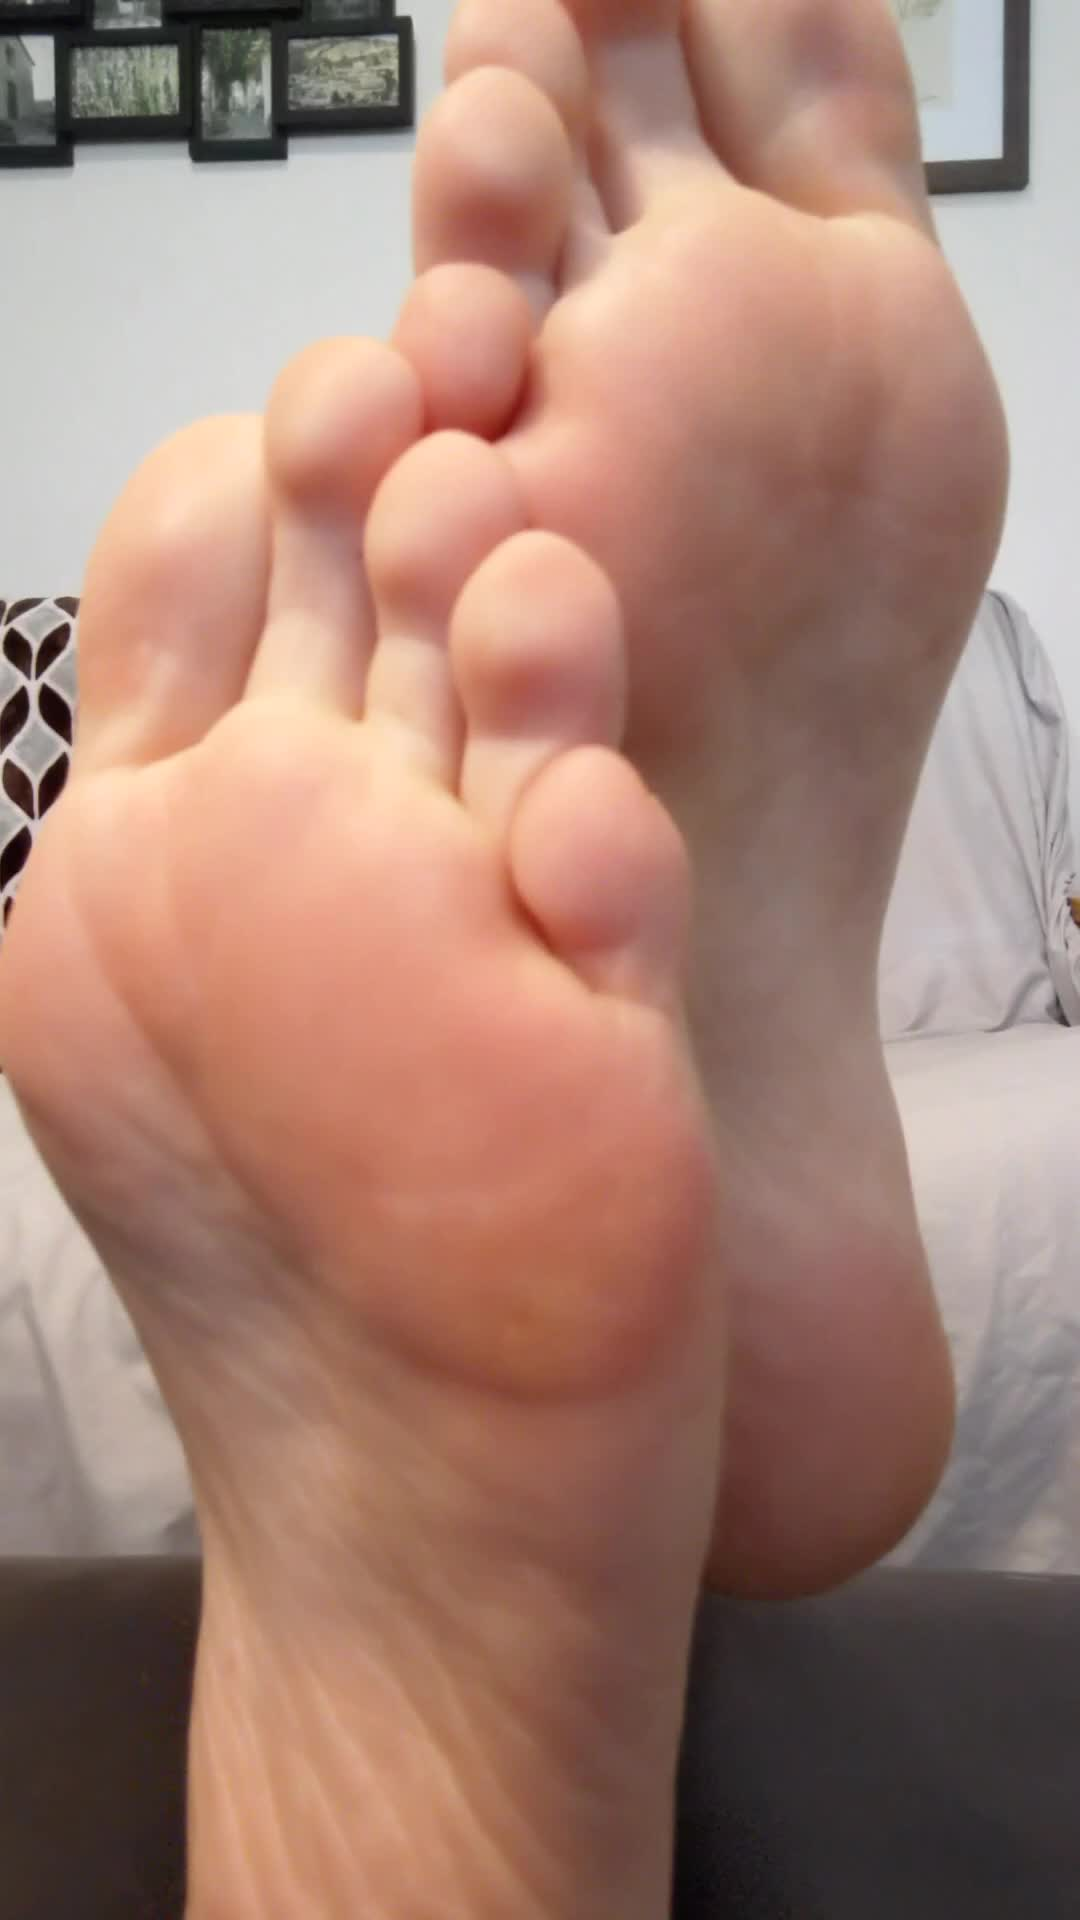 Sexy soles up close!